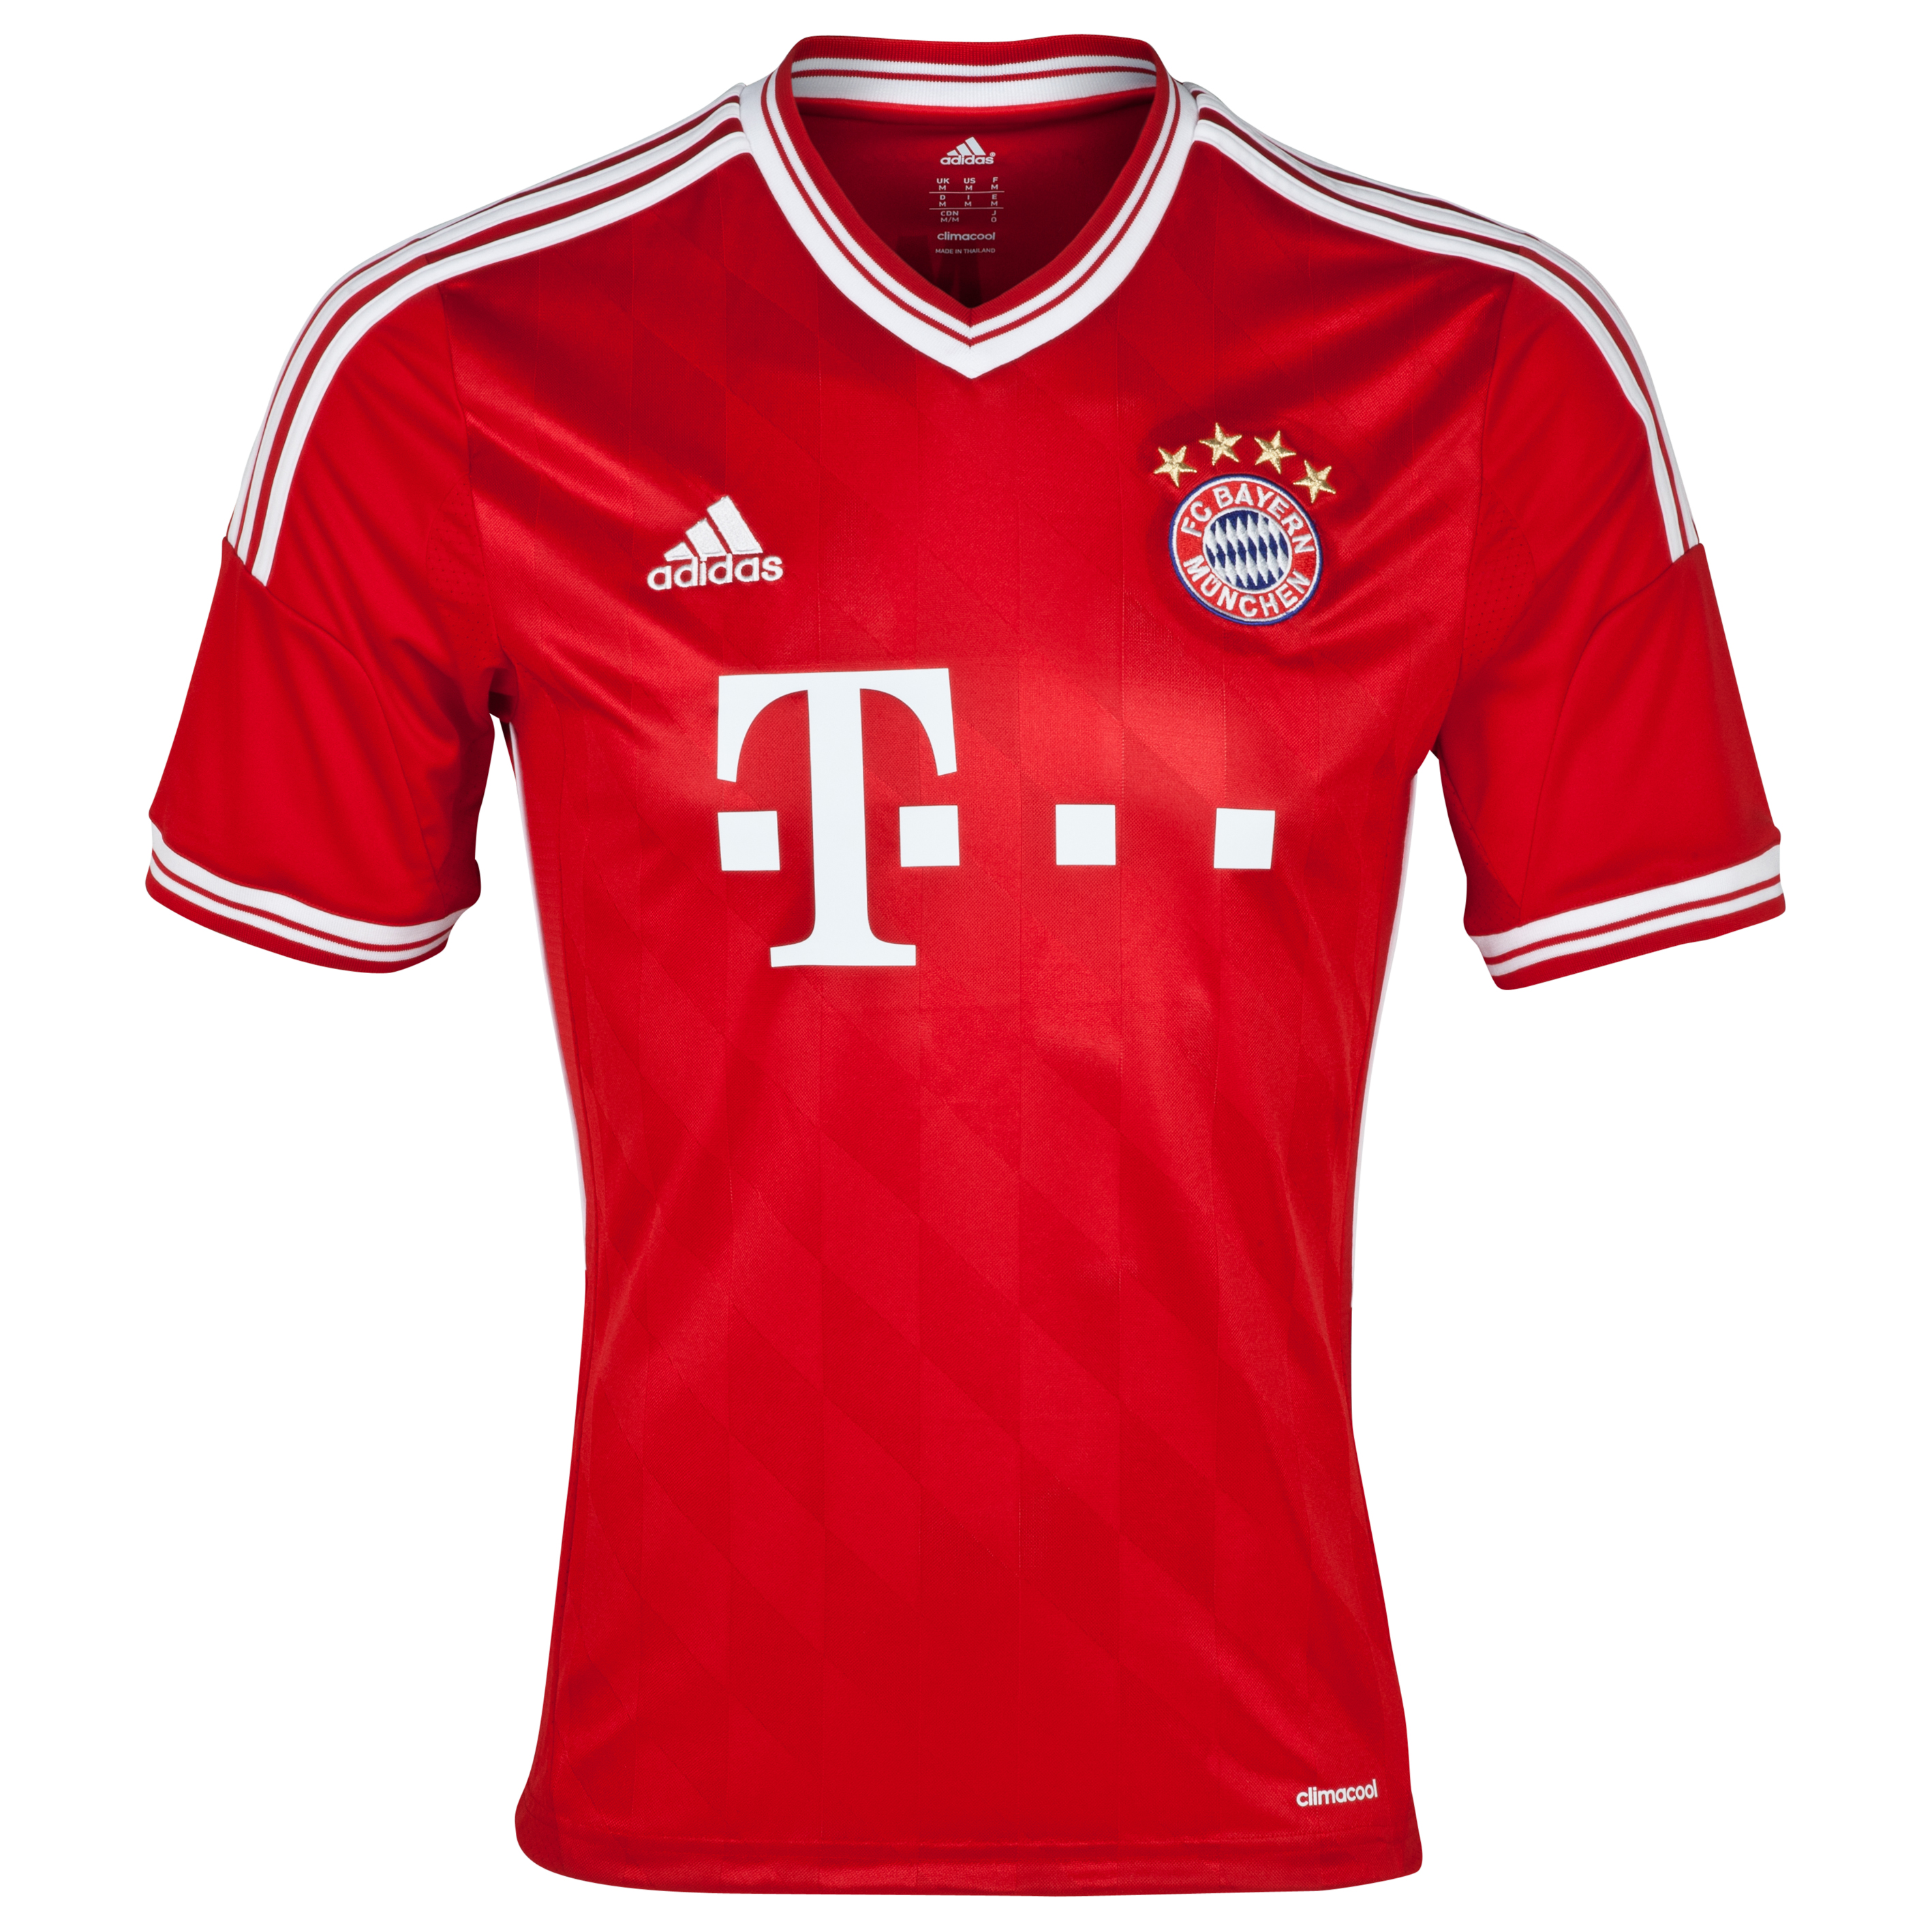 Bayern Munich Home Shirt 2013/14